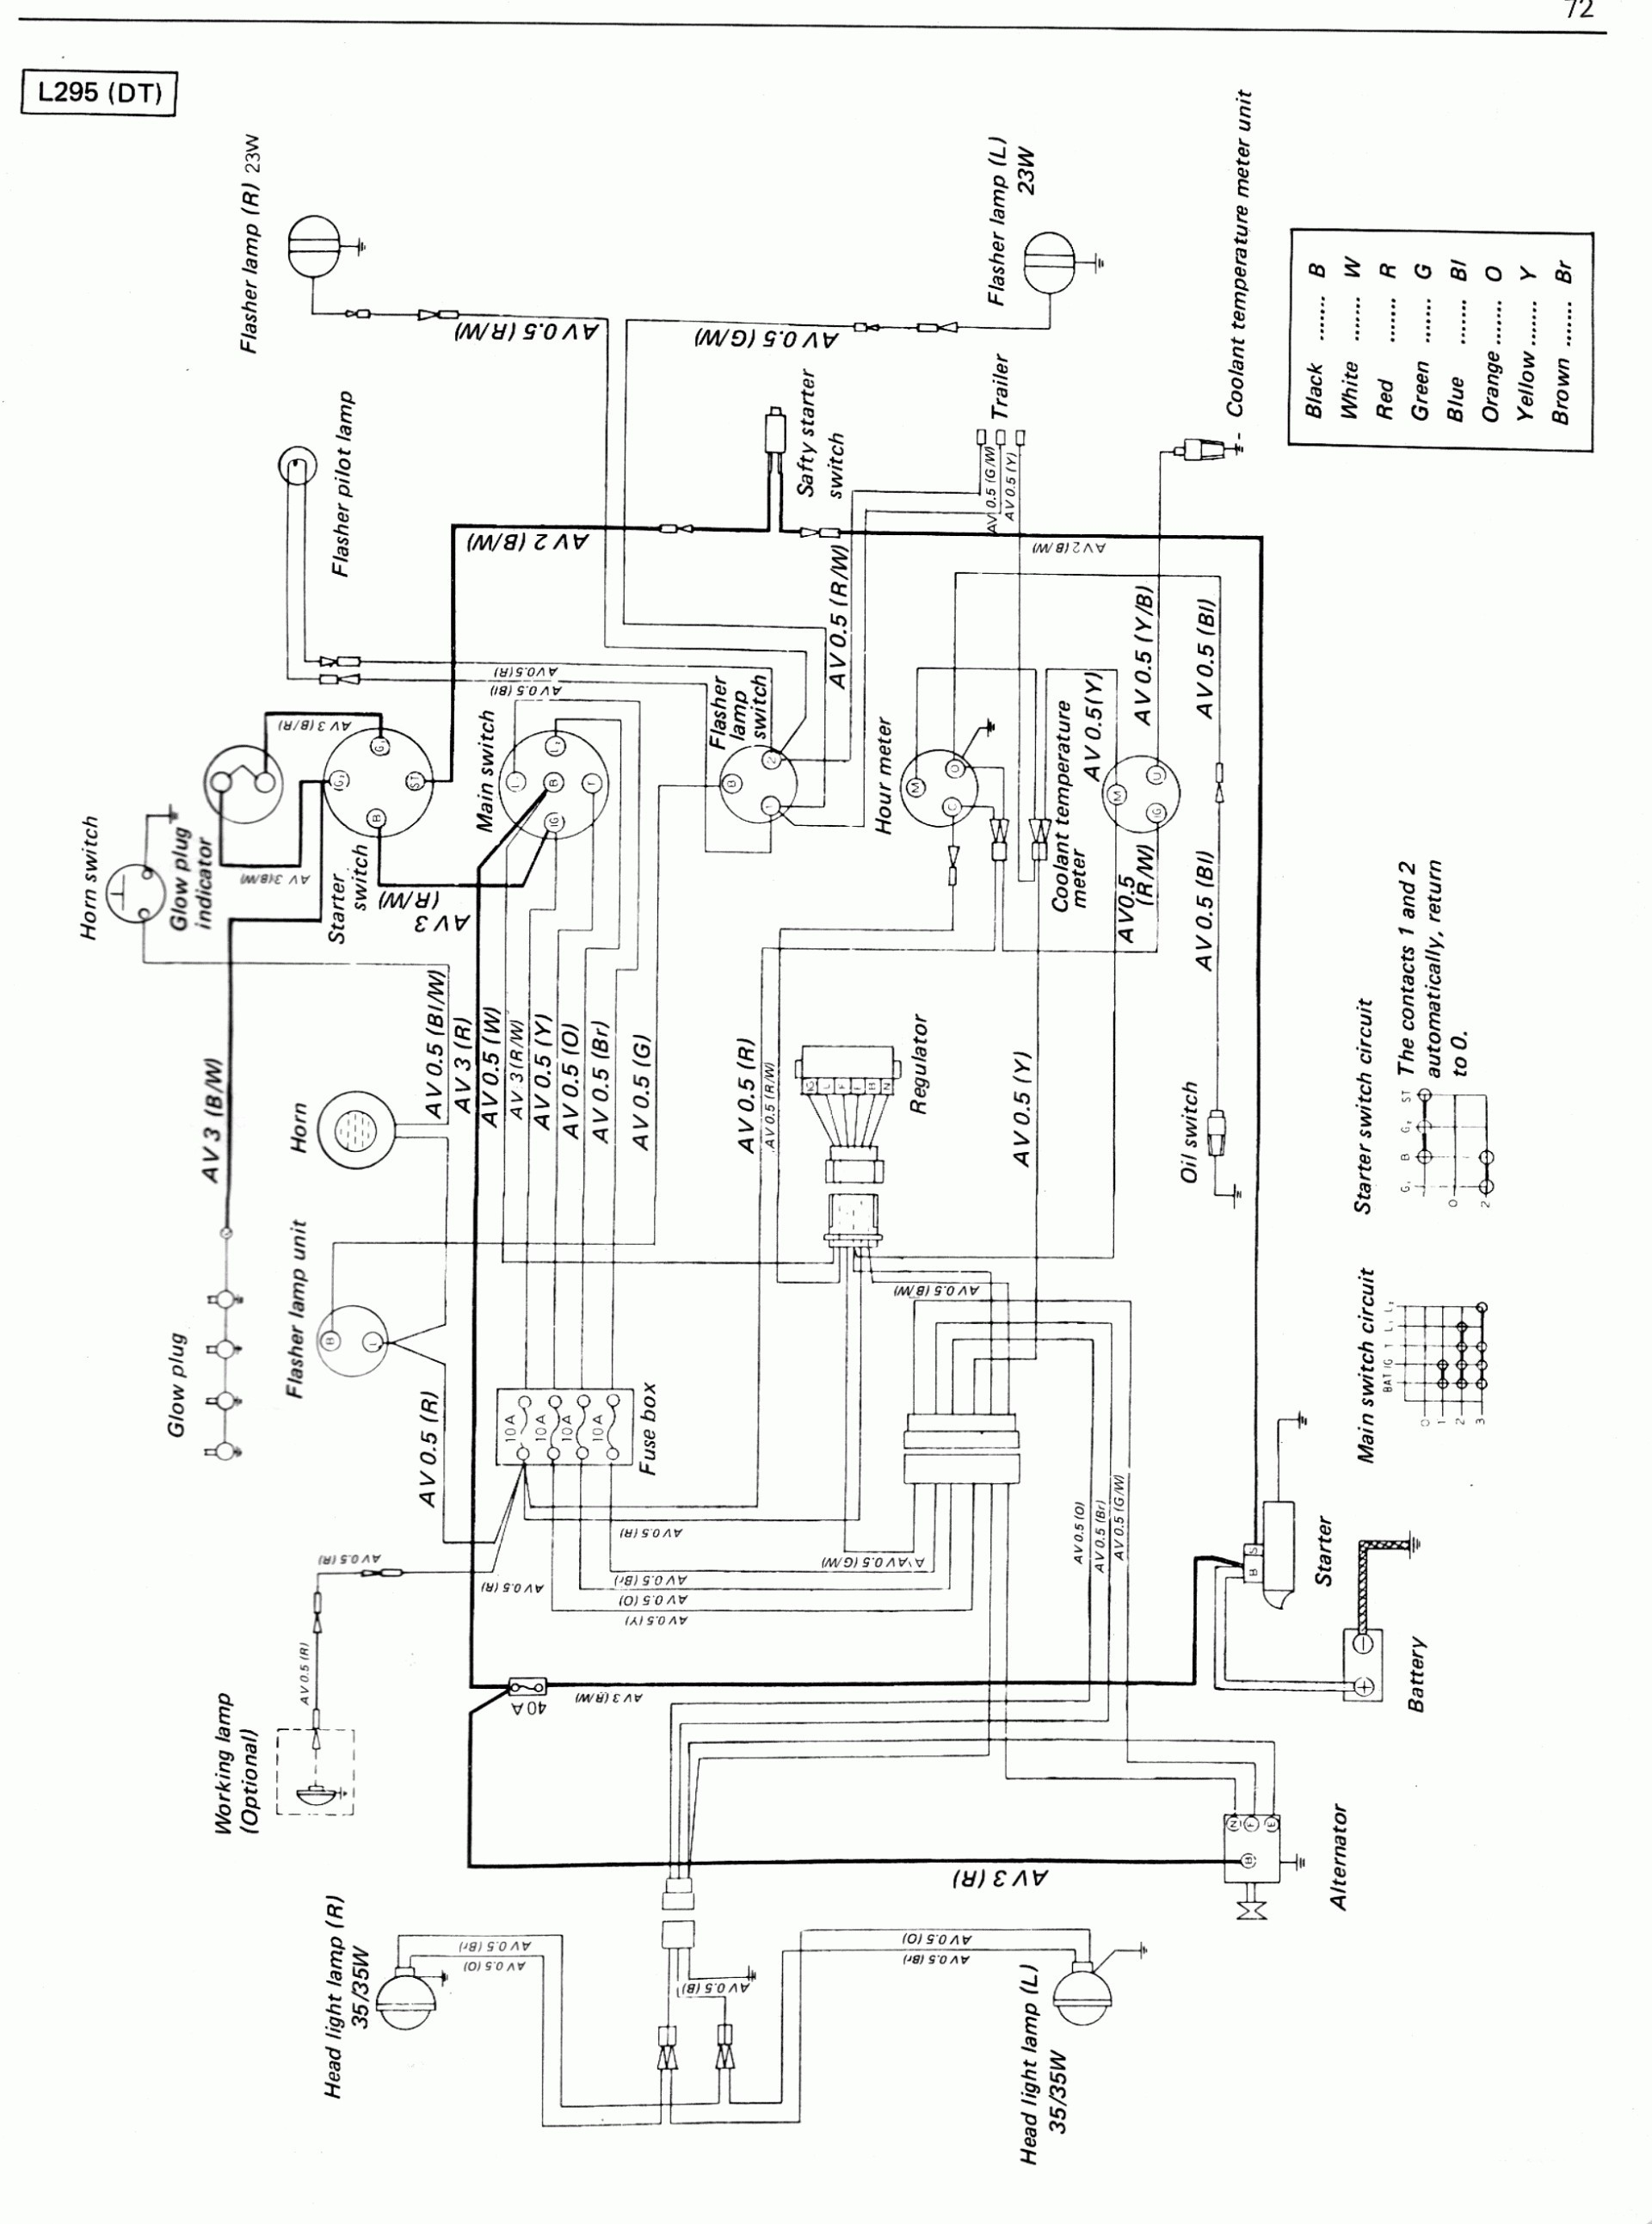 Wire Diagram For Kubota Wiring Diagram Expert Kubota